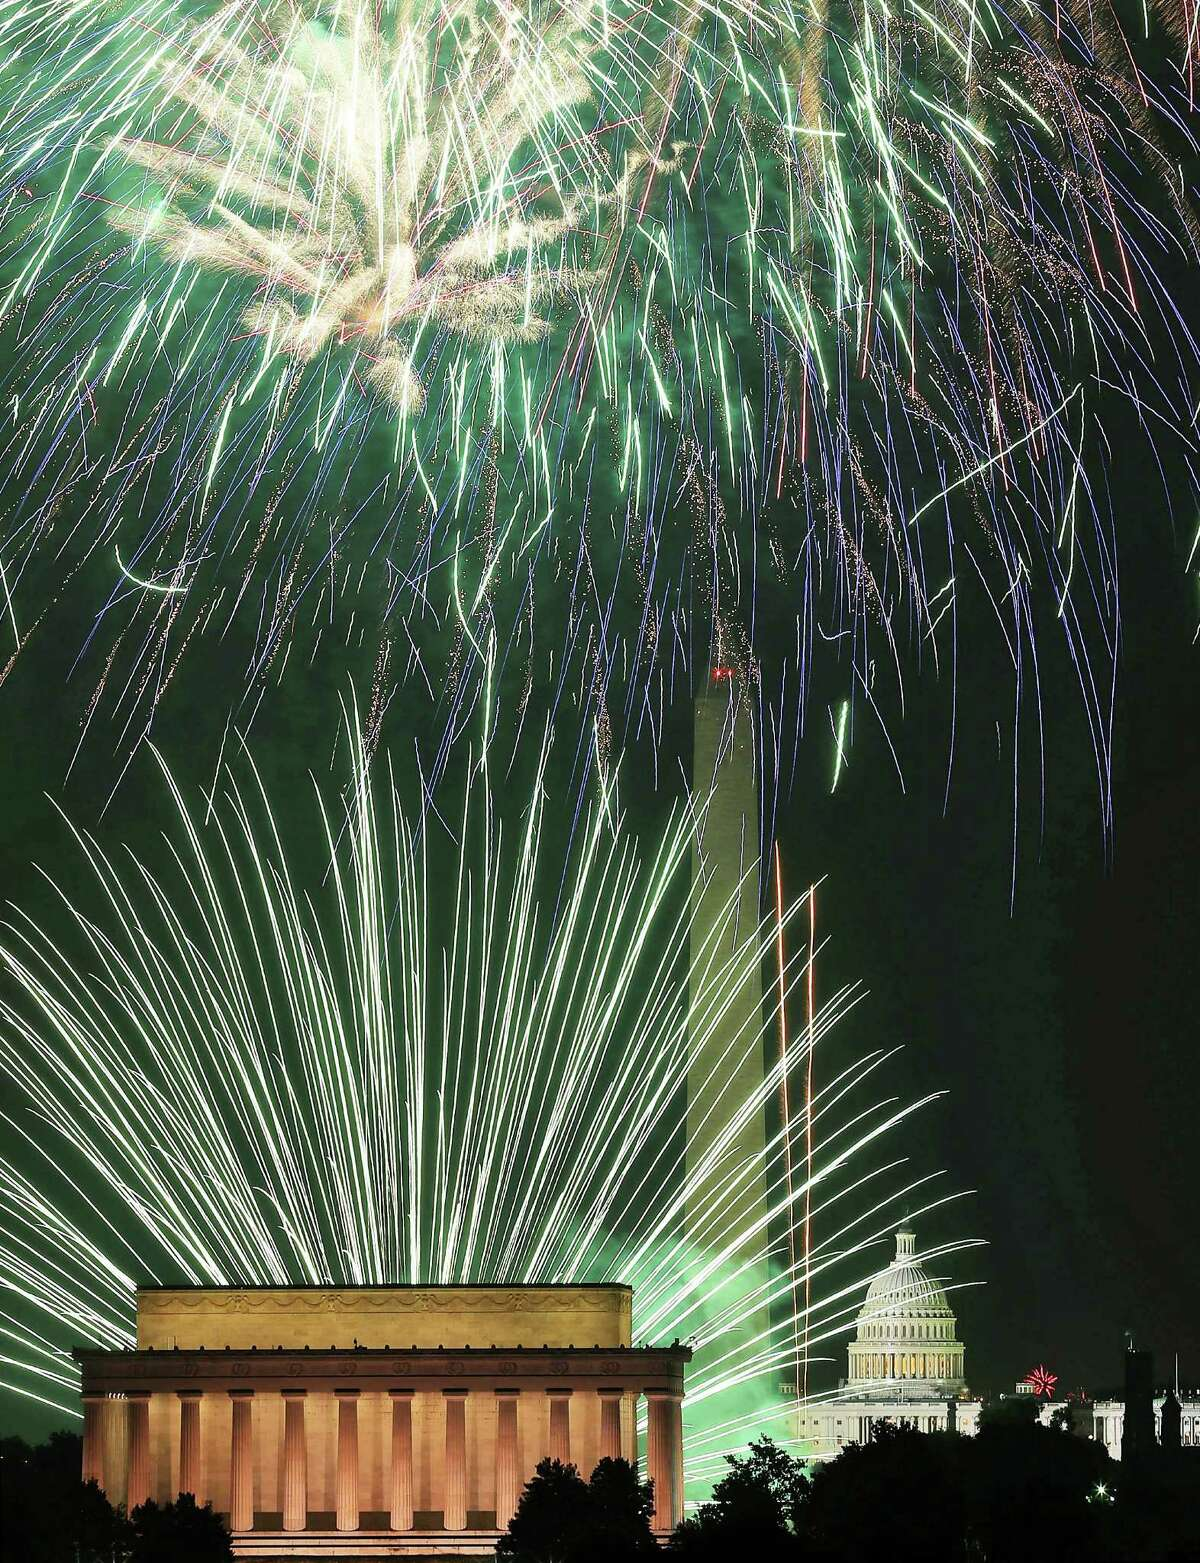 WASHINGTON, DC - JULY 04: Fireworks light up the sky over the Lincoln Memorial, Washington Monument, and the U.S. Capitol on July 4, 2012 in Washington, DC. July 4th is a national holiday with the nation celebrating its 237th birthday. (Photo by Mark Wilson/Getty Images) *** BESTPIX ***